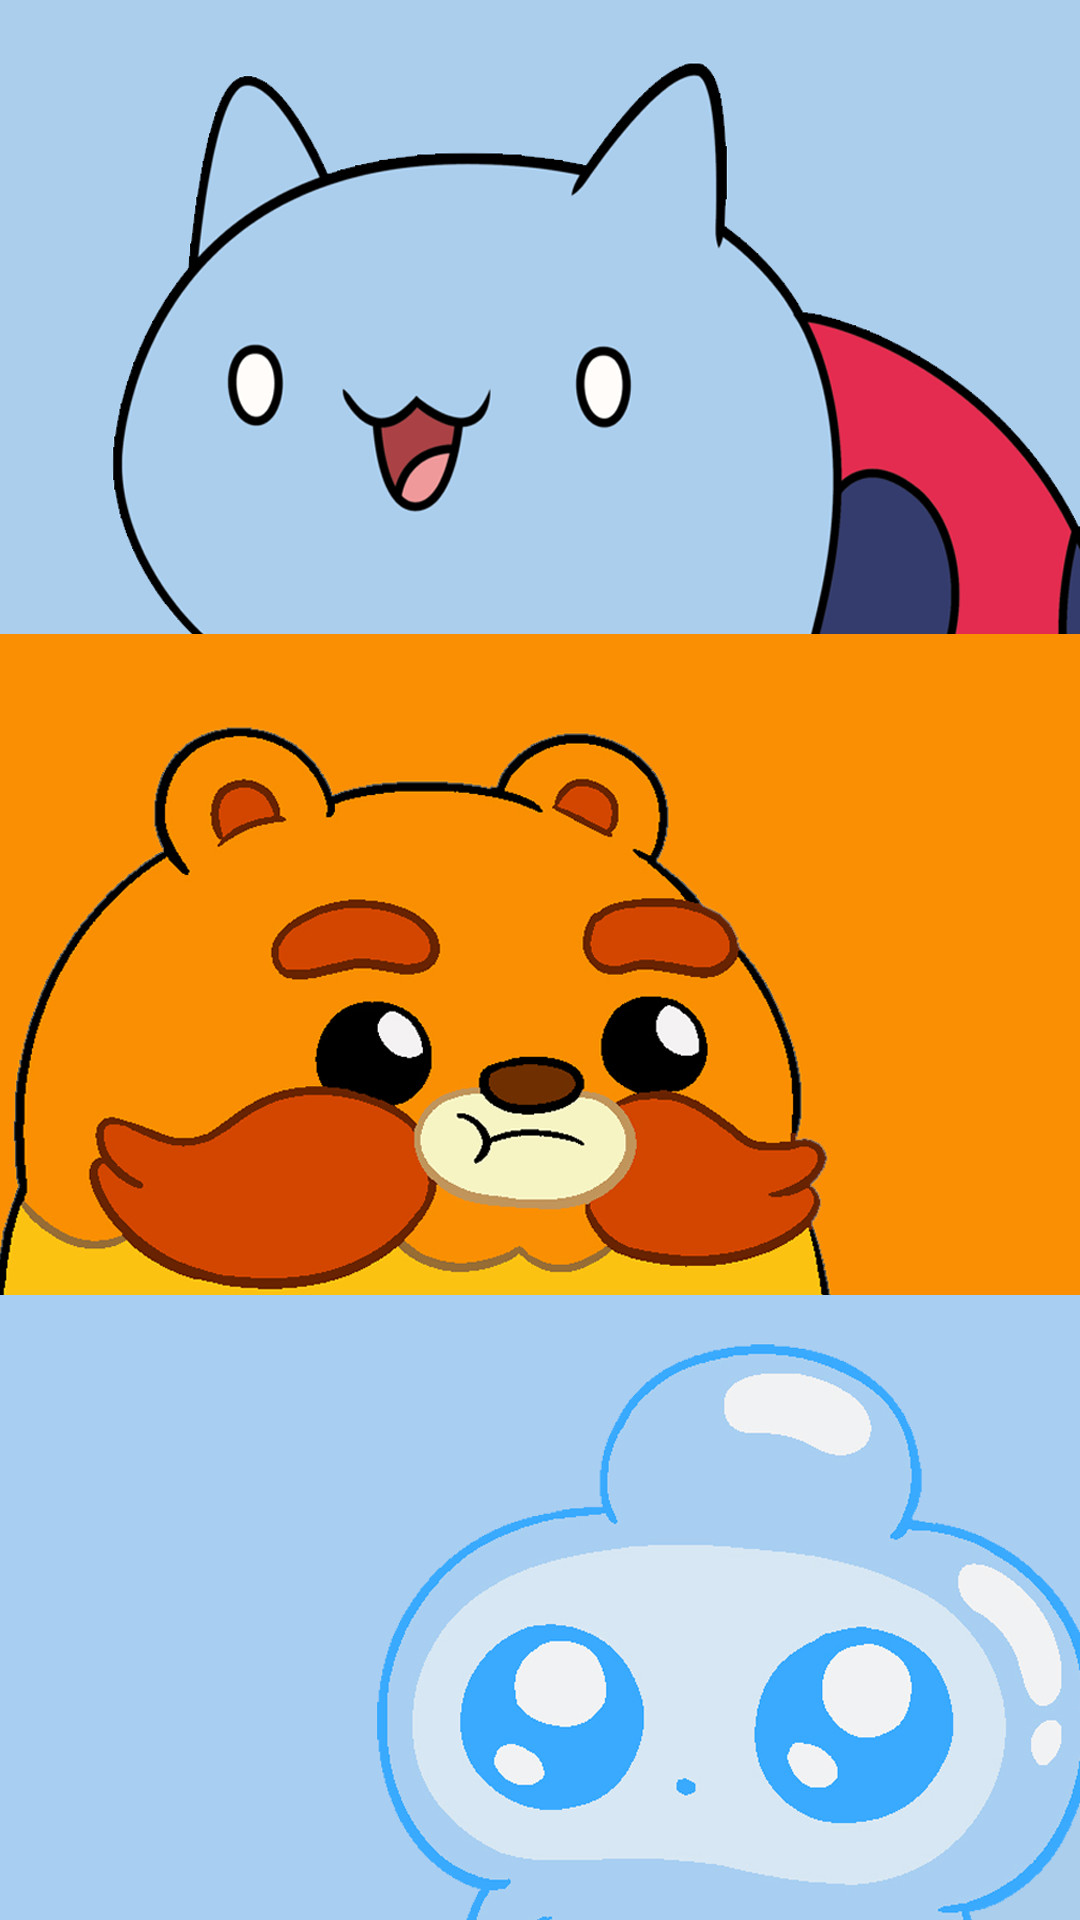 Res: 1080x1920, Catbug, Impossibear, and Jelly Kid Phone Wallpapers (1080 x 1920)